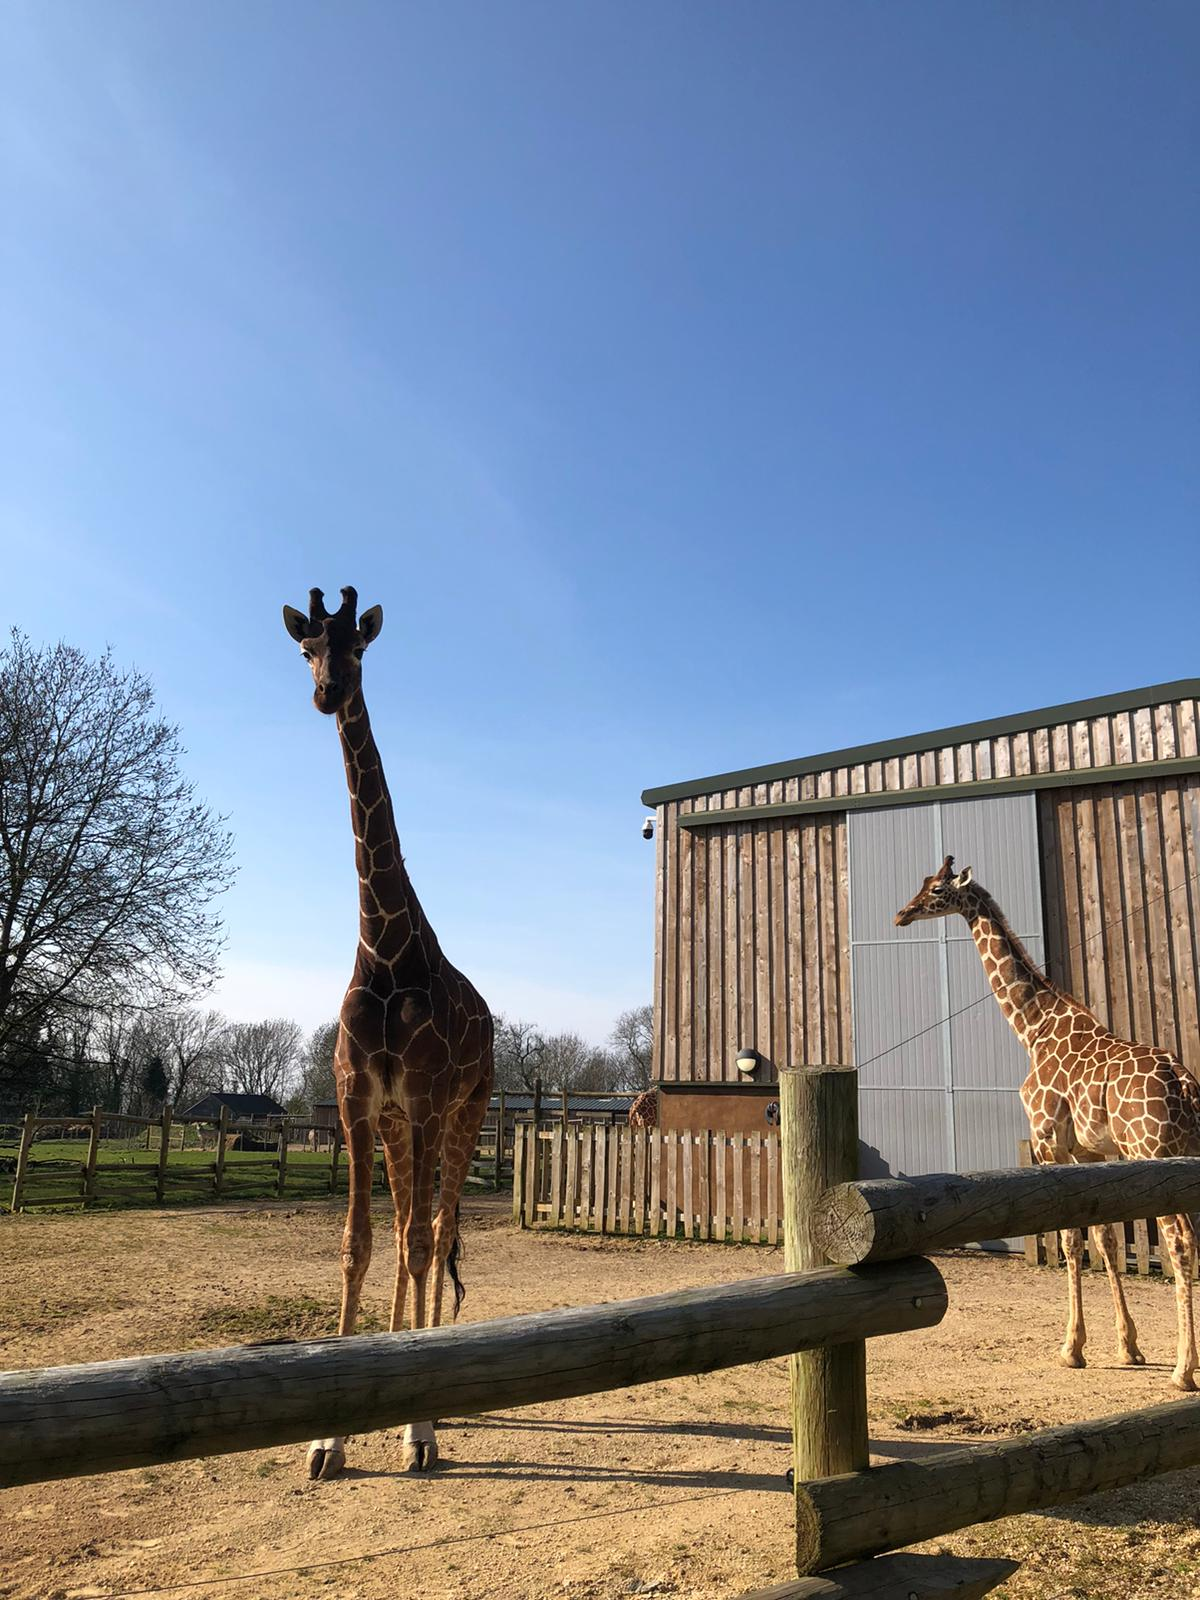 Two giraffes bask in the sun at the Wild Place project